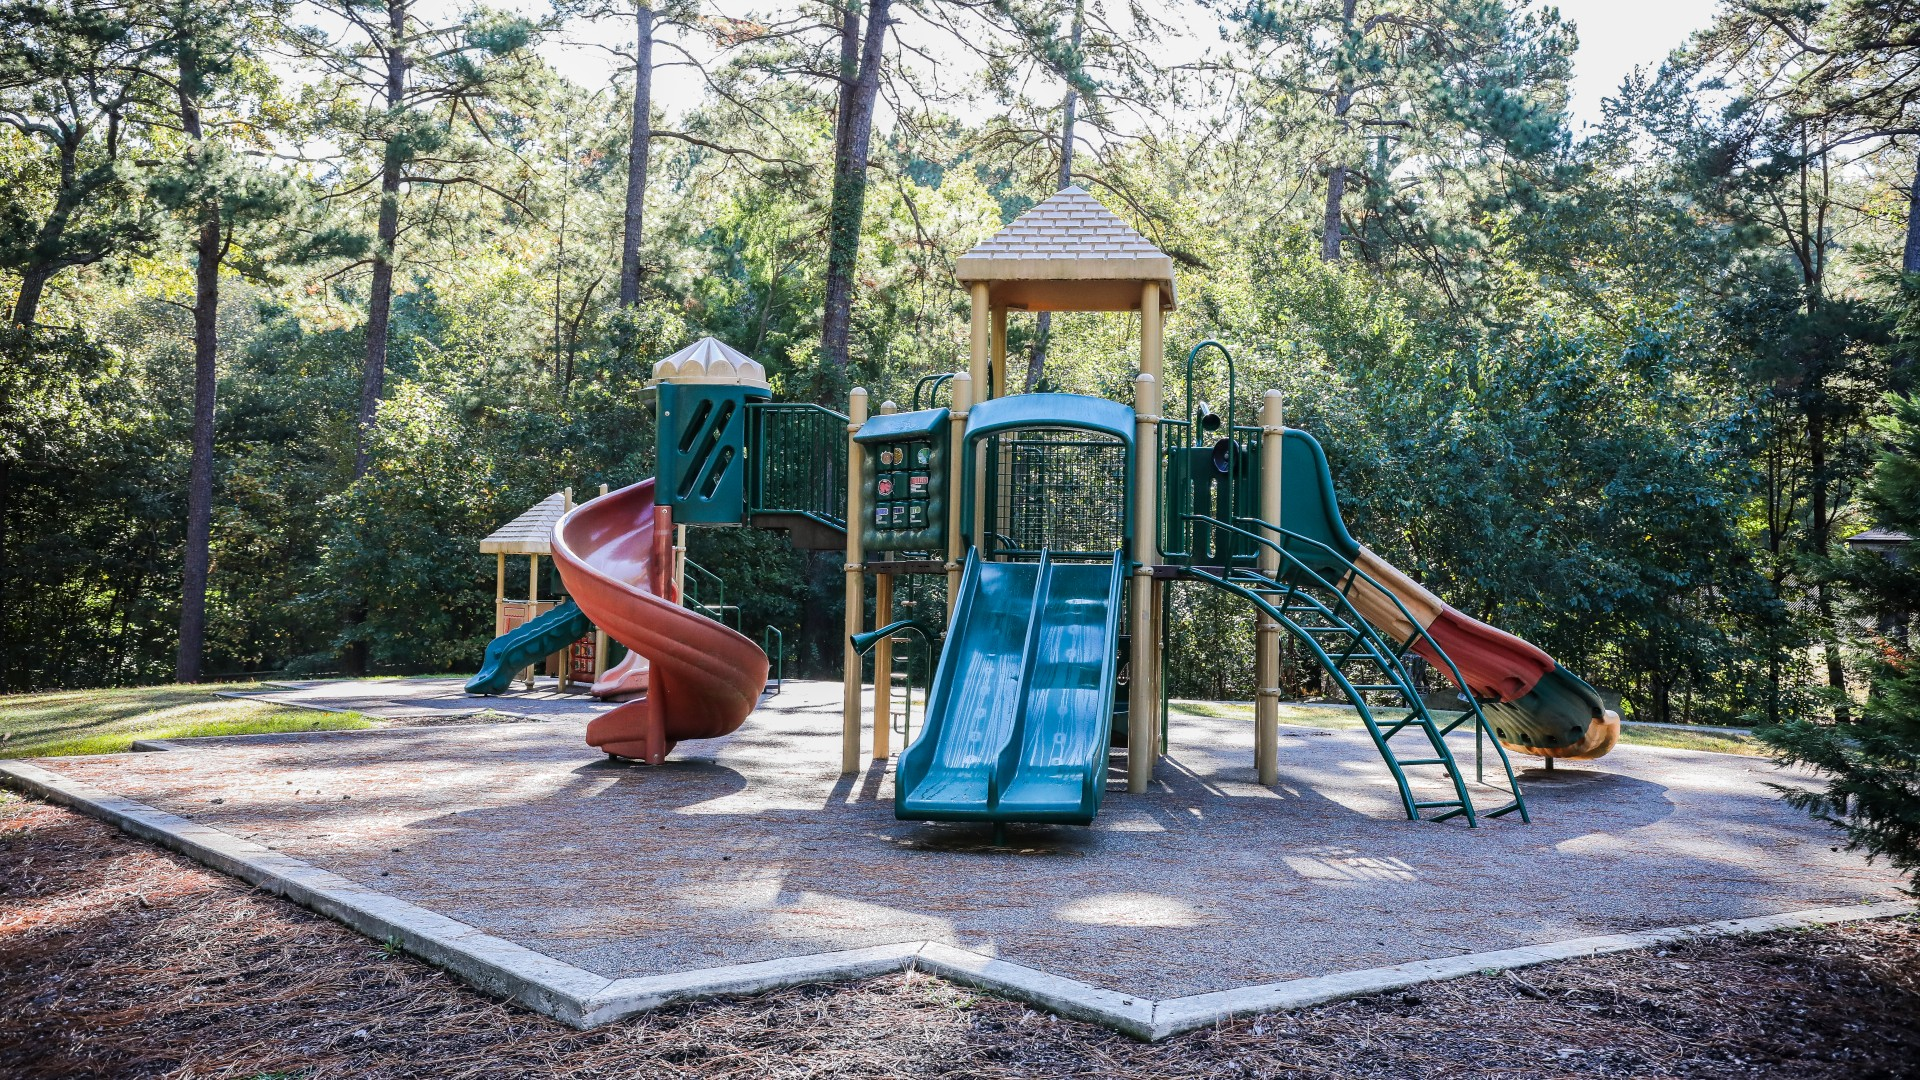 A second playground at Kentwood Park featuring two slides and a rubber surface